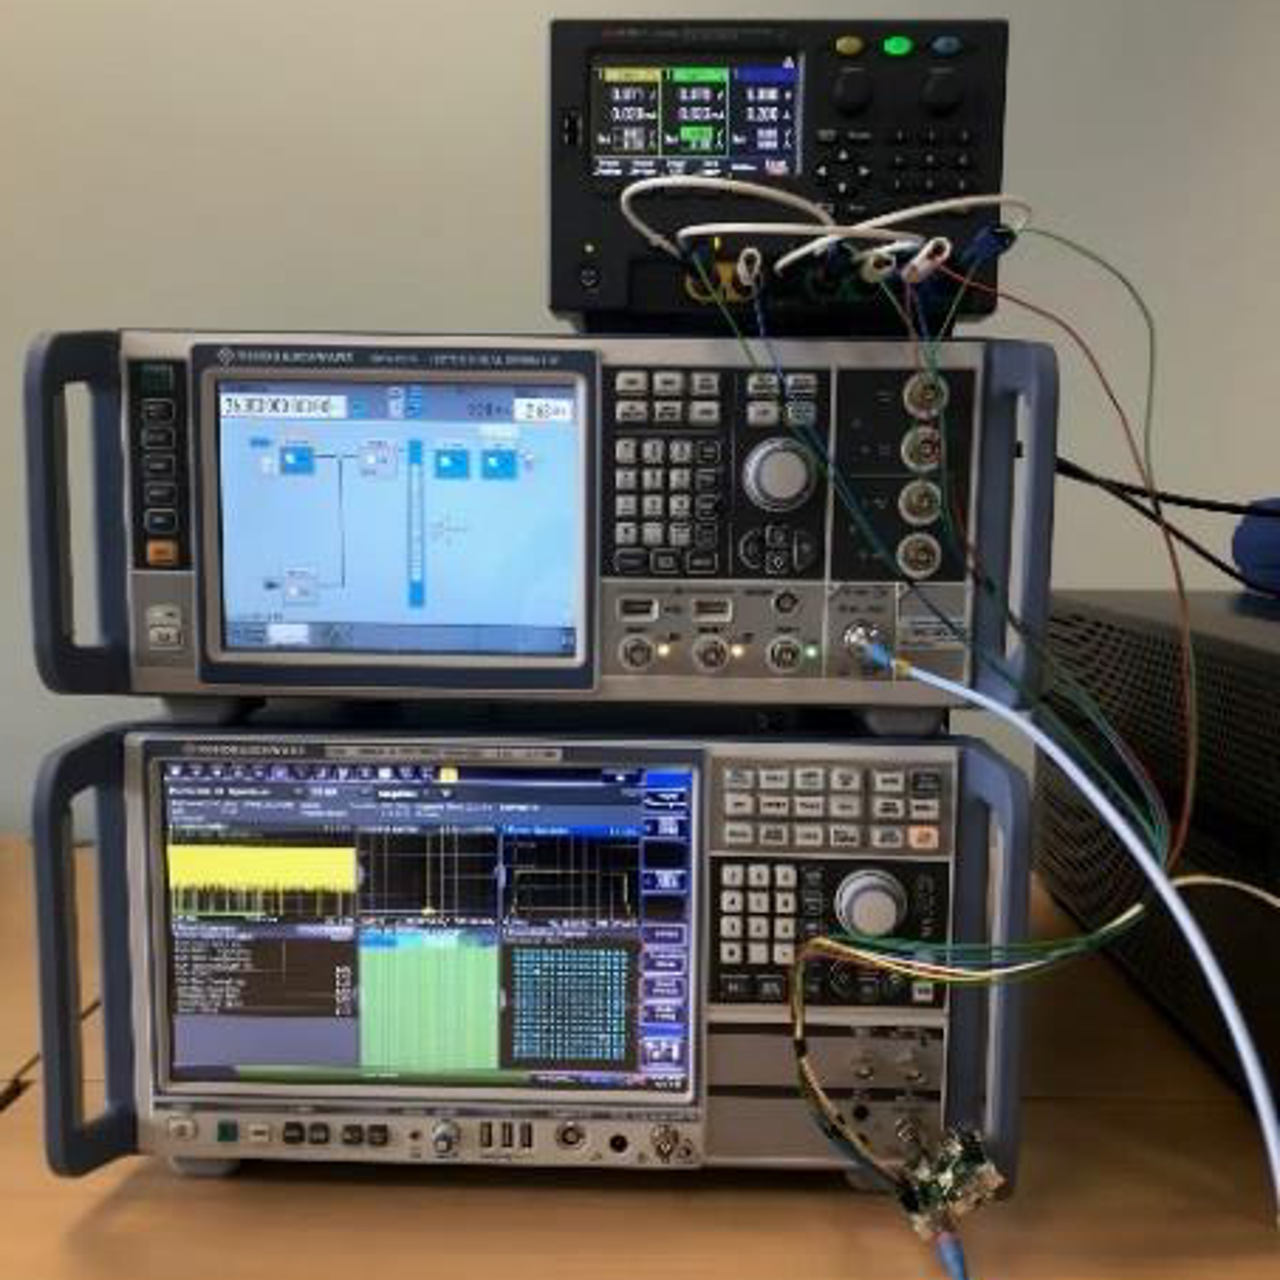 Testing-24-28GHz-Power-Amplifier-using-5G_03.png